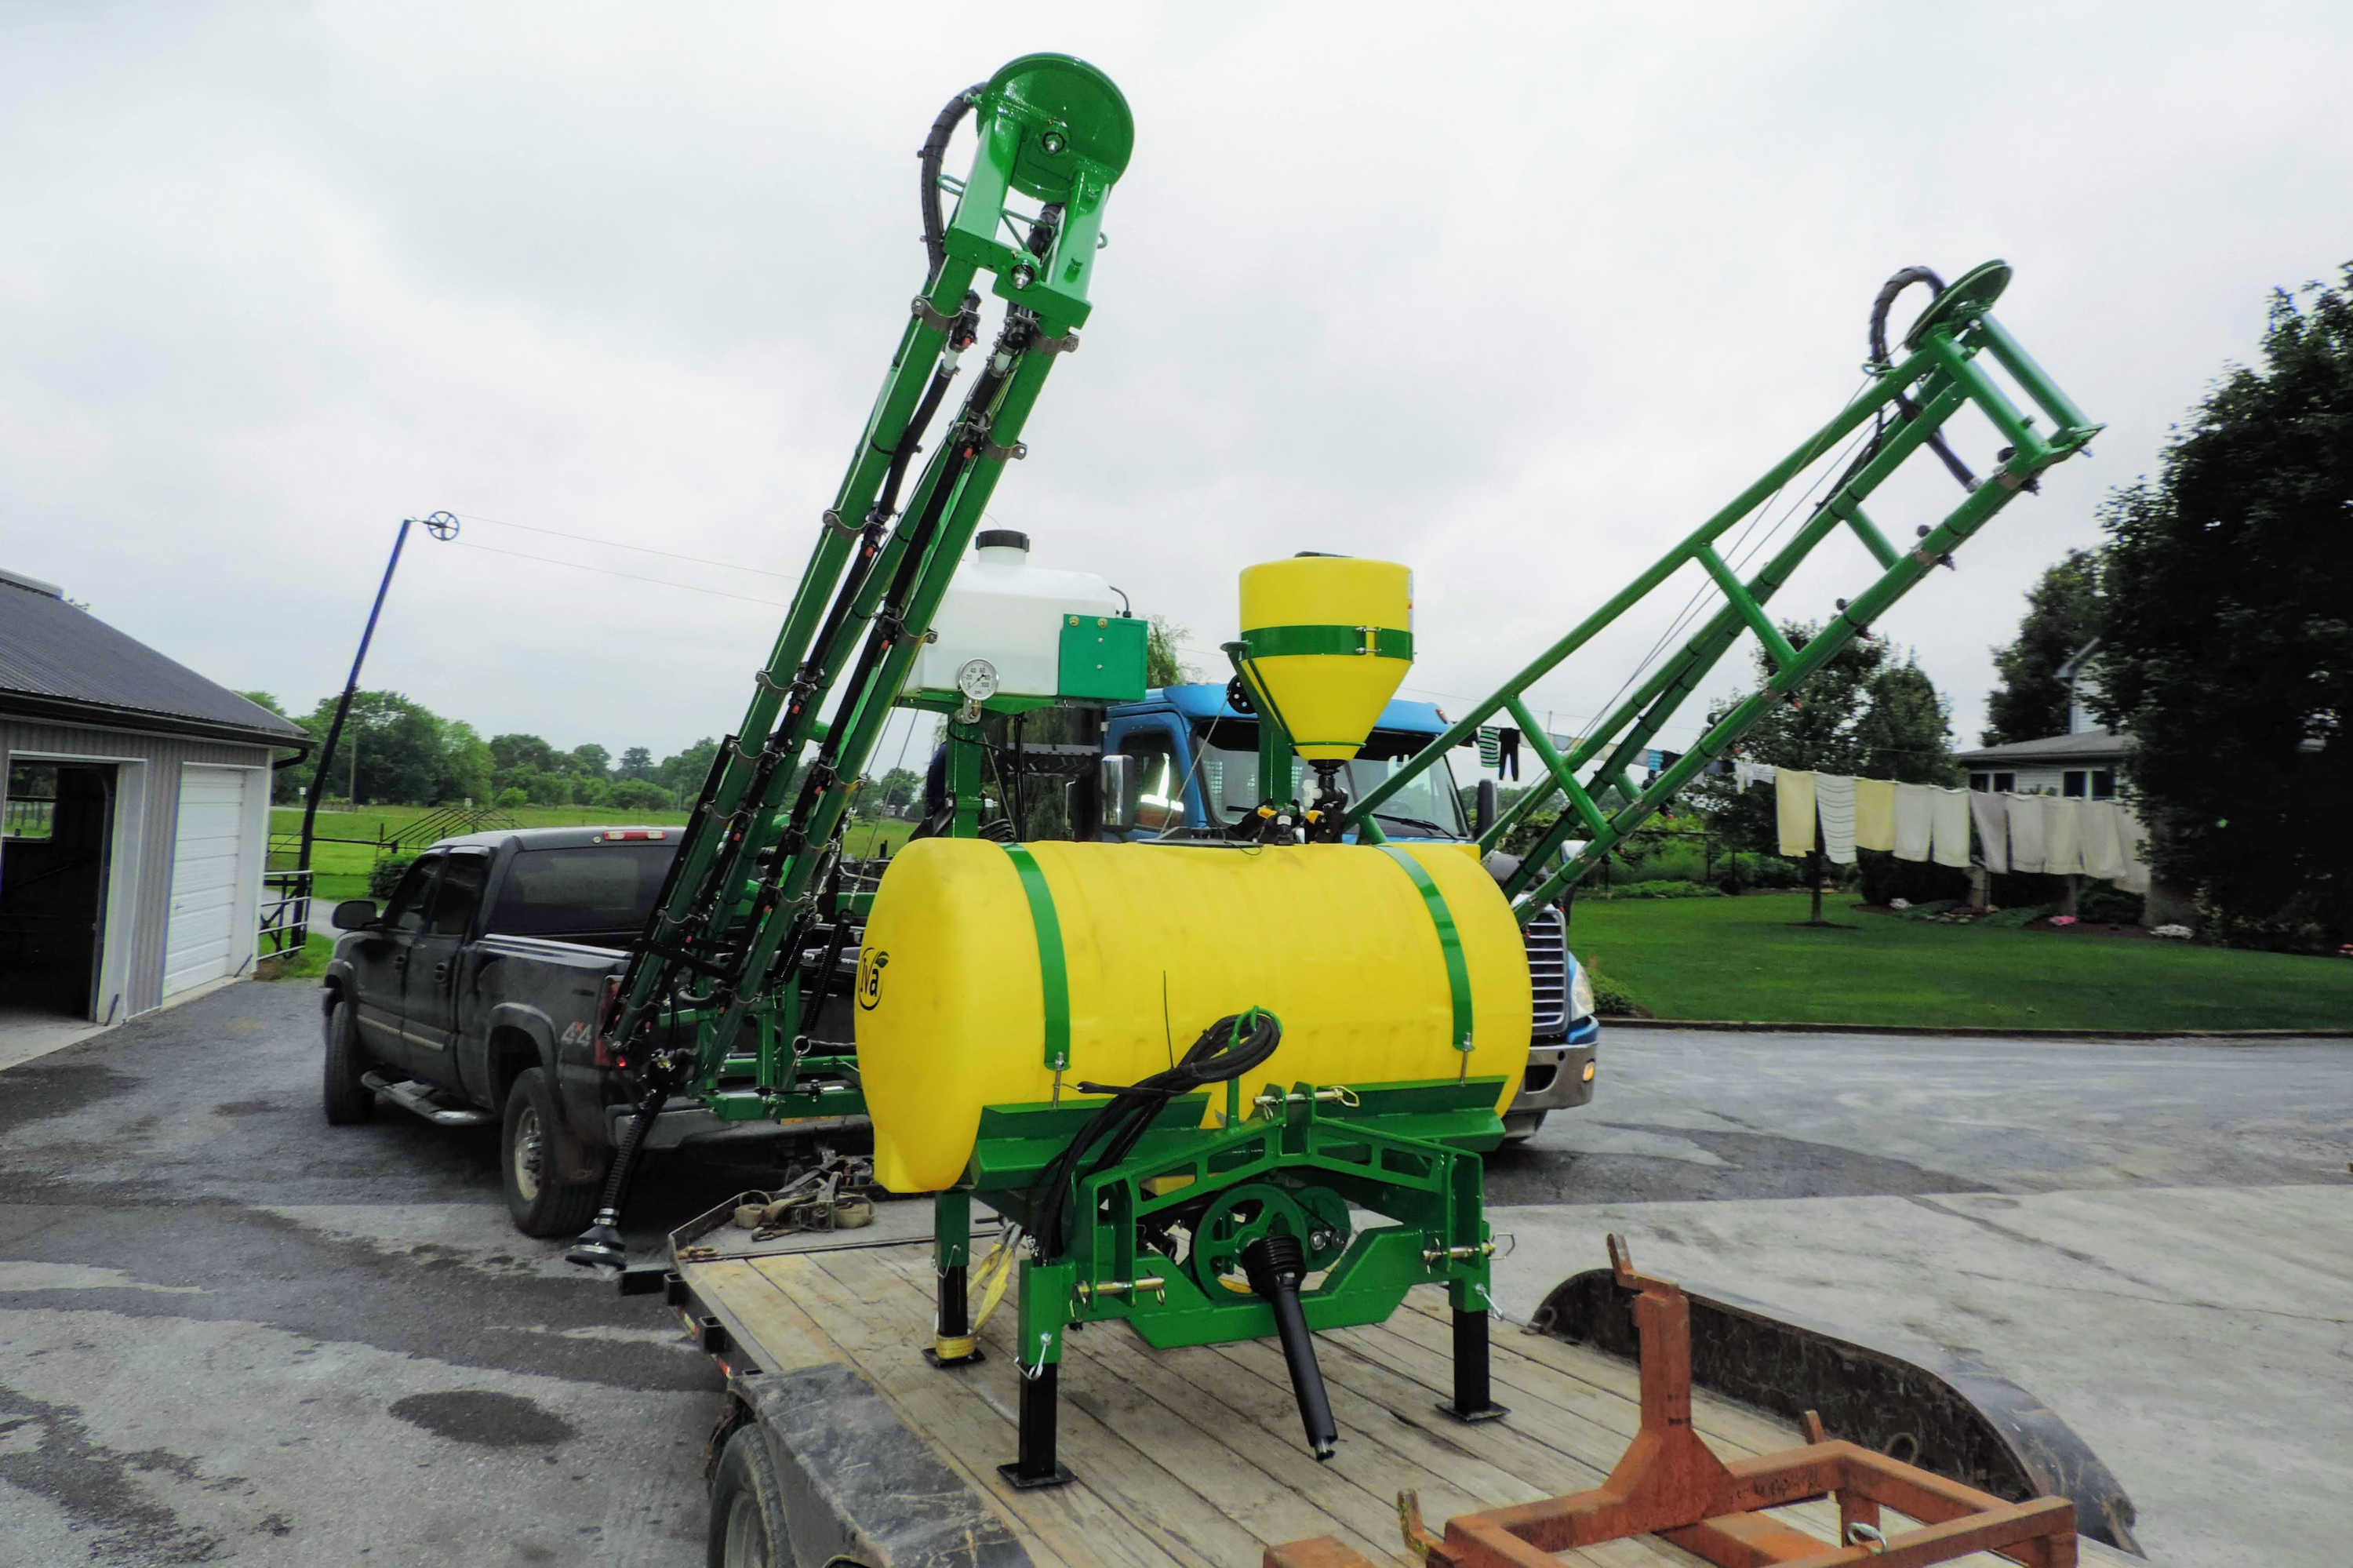 200 gallon 3-point Hitch Mounted Sprayer with 45' SpringRide booms